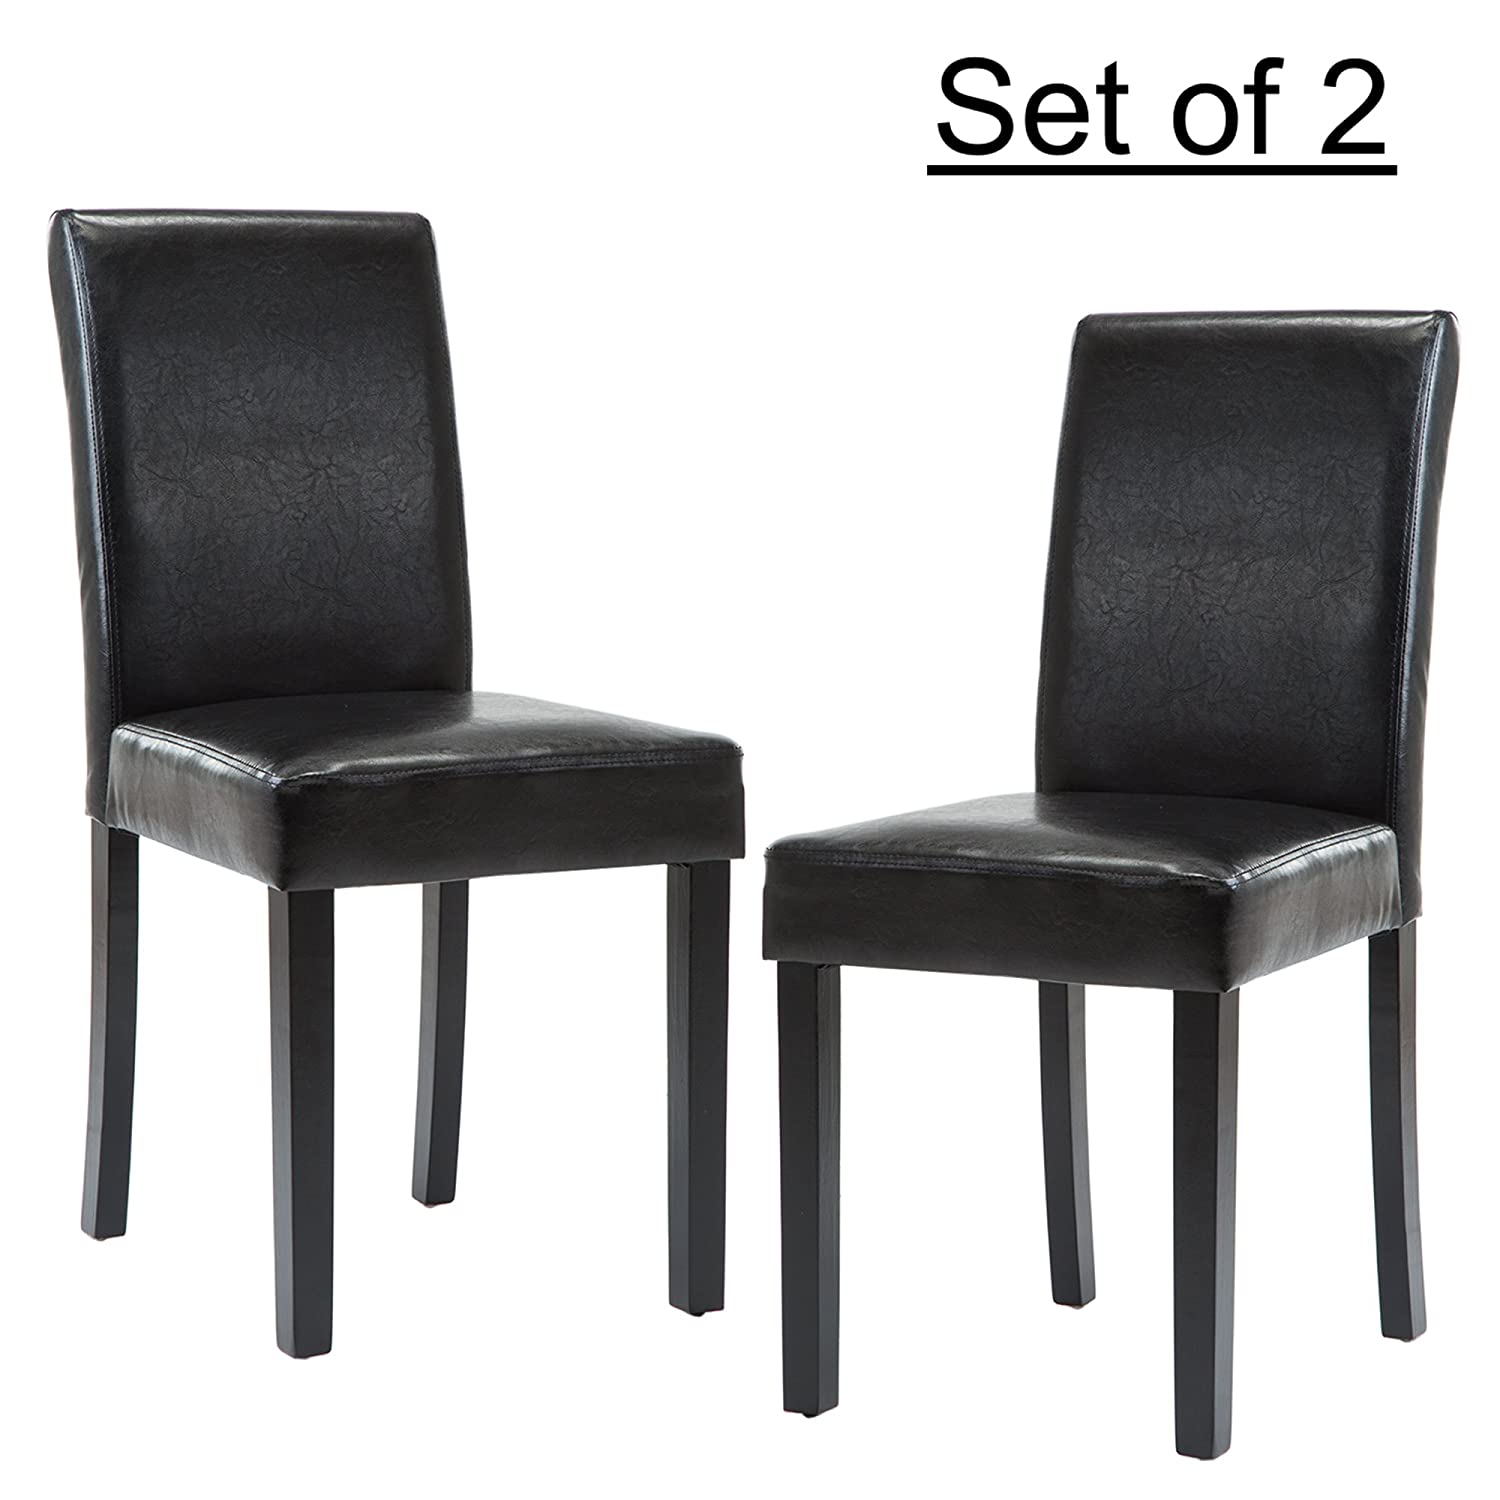 LSSBOUGHT Set of 2 Urban Style Leatherette Dining Chairs Black Dining Room with Solid Wood Legs,Set of 2 Black